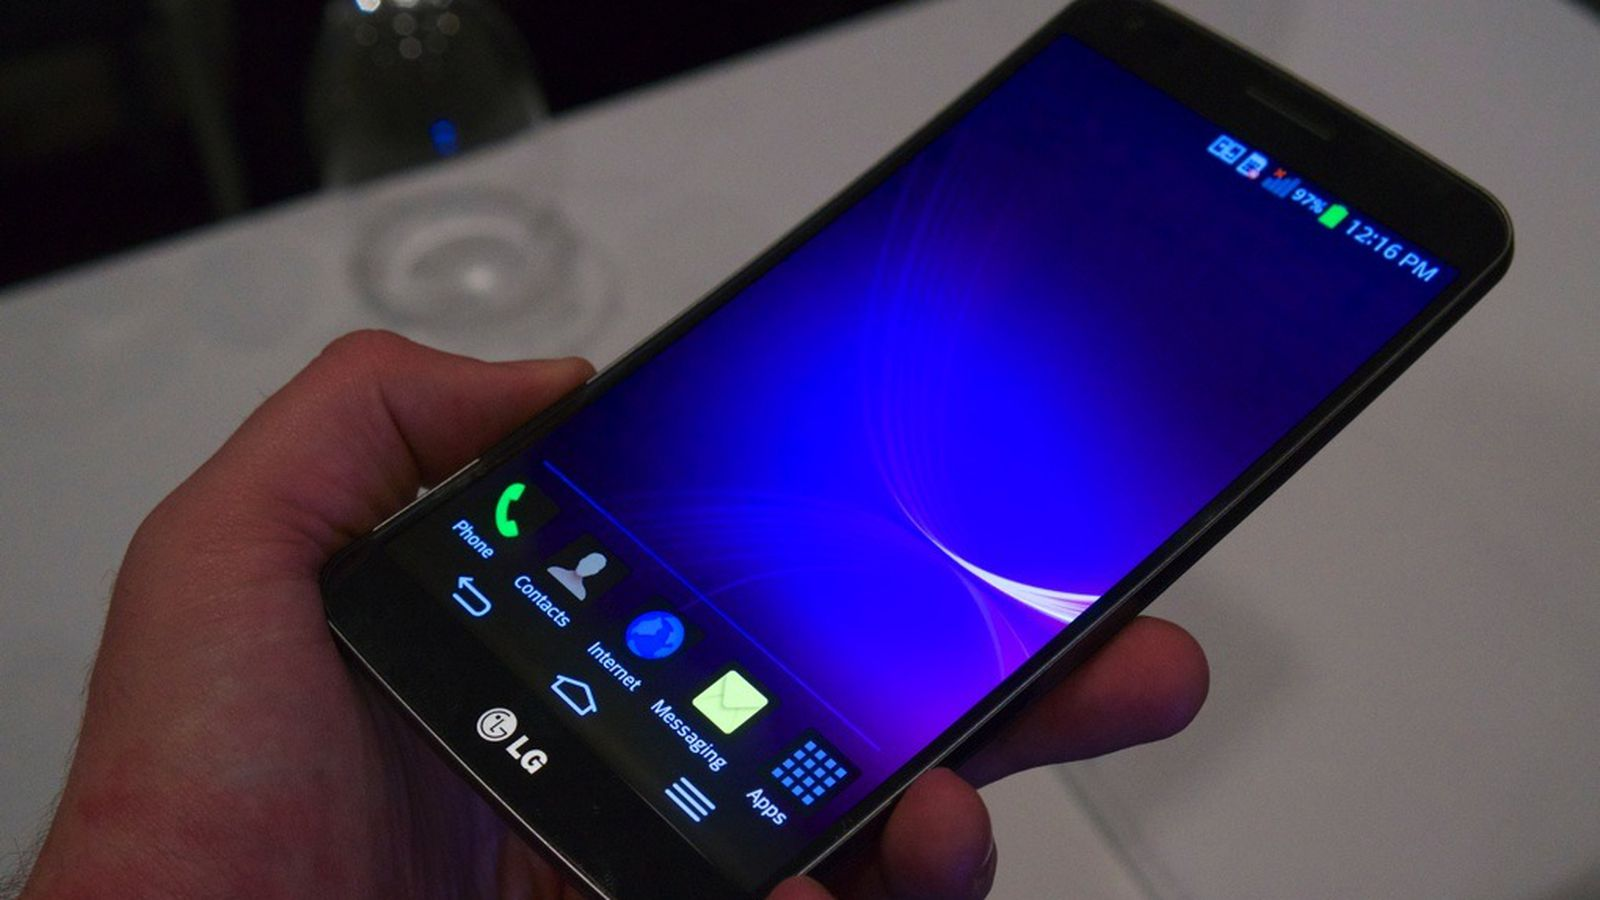 A closer look at LG's curved G Flex smartphone